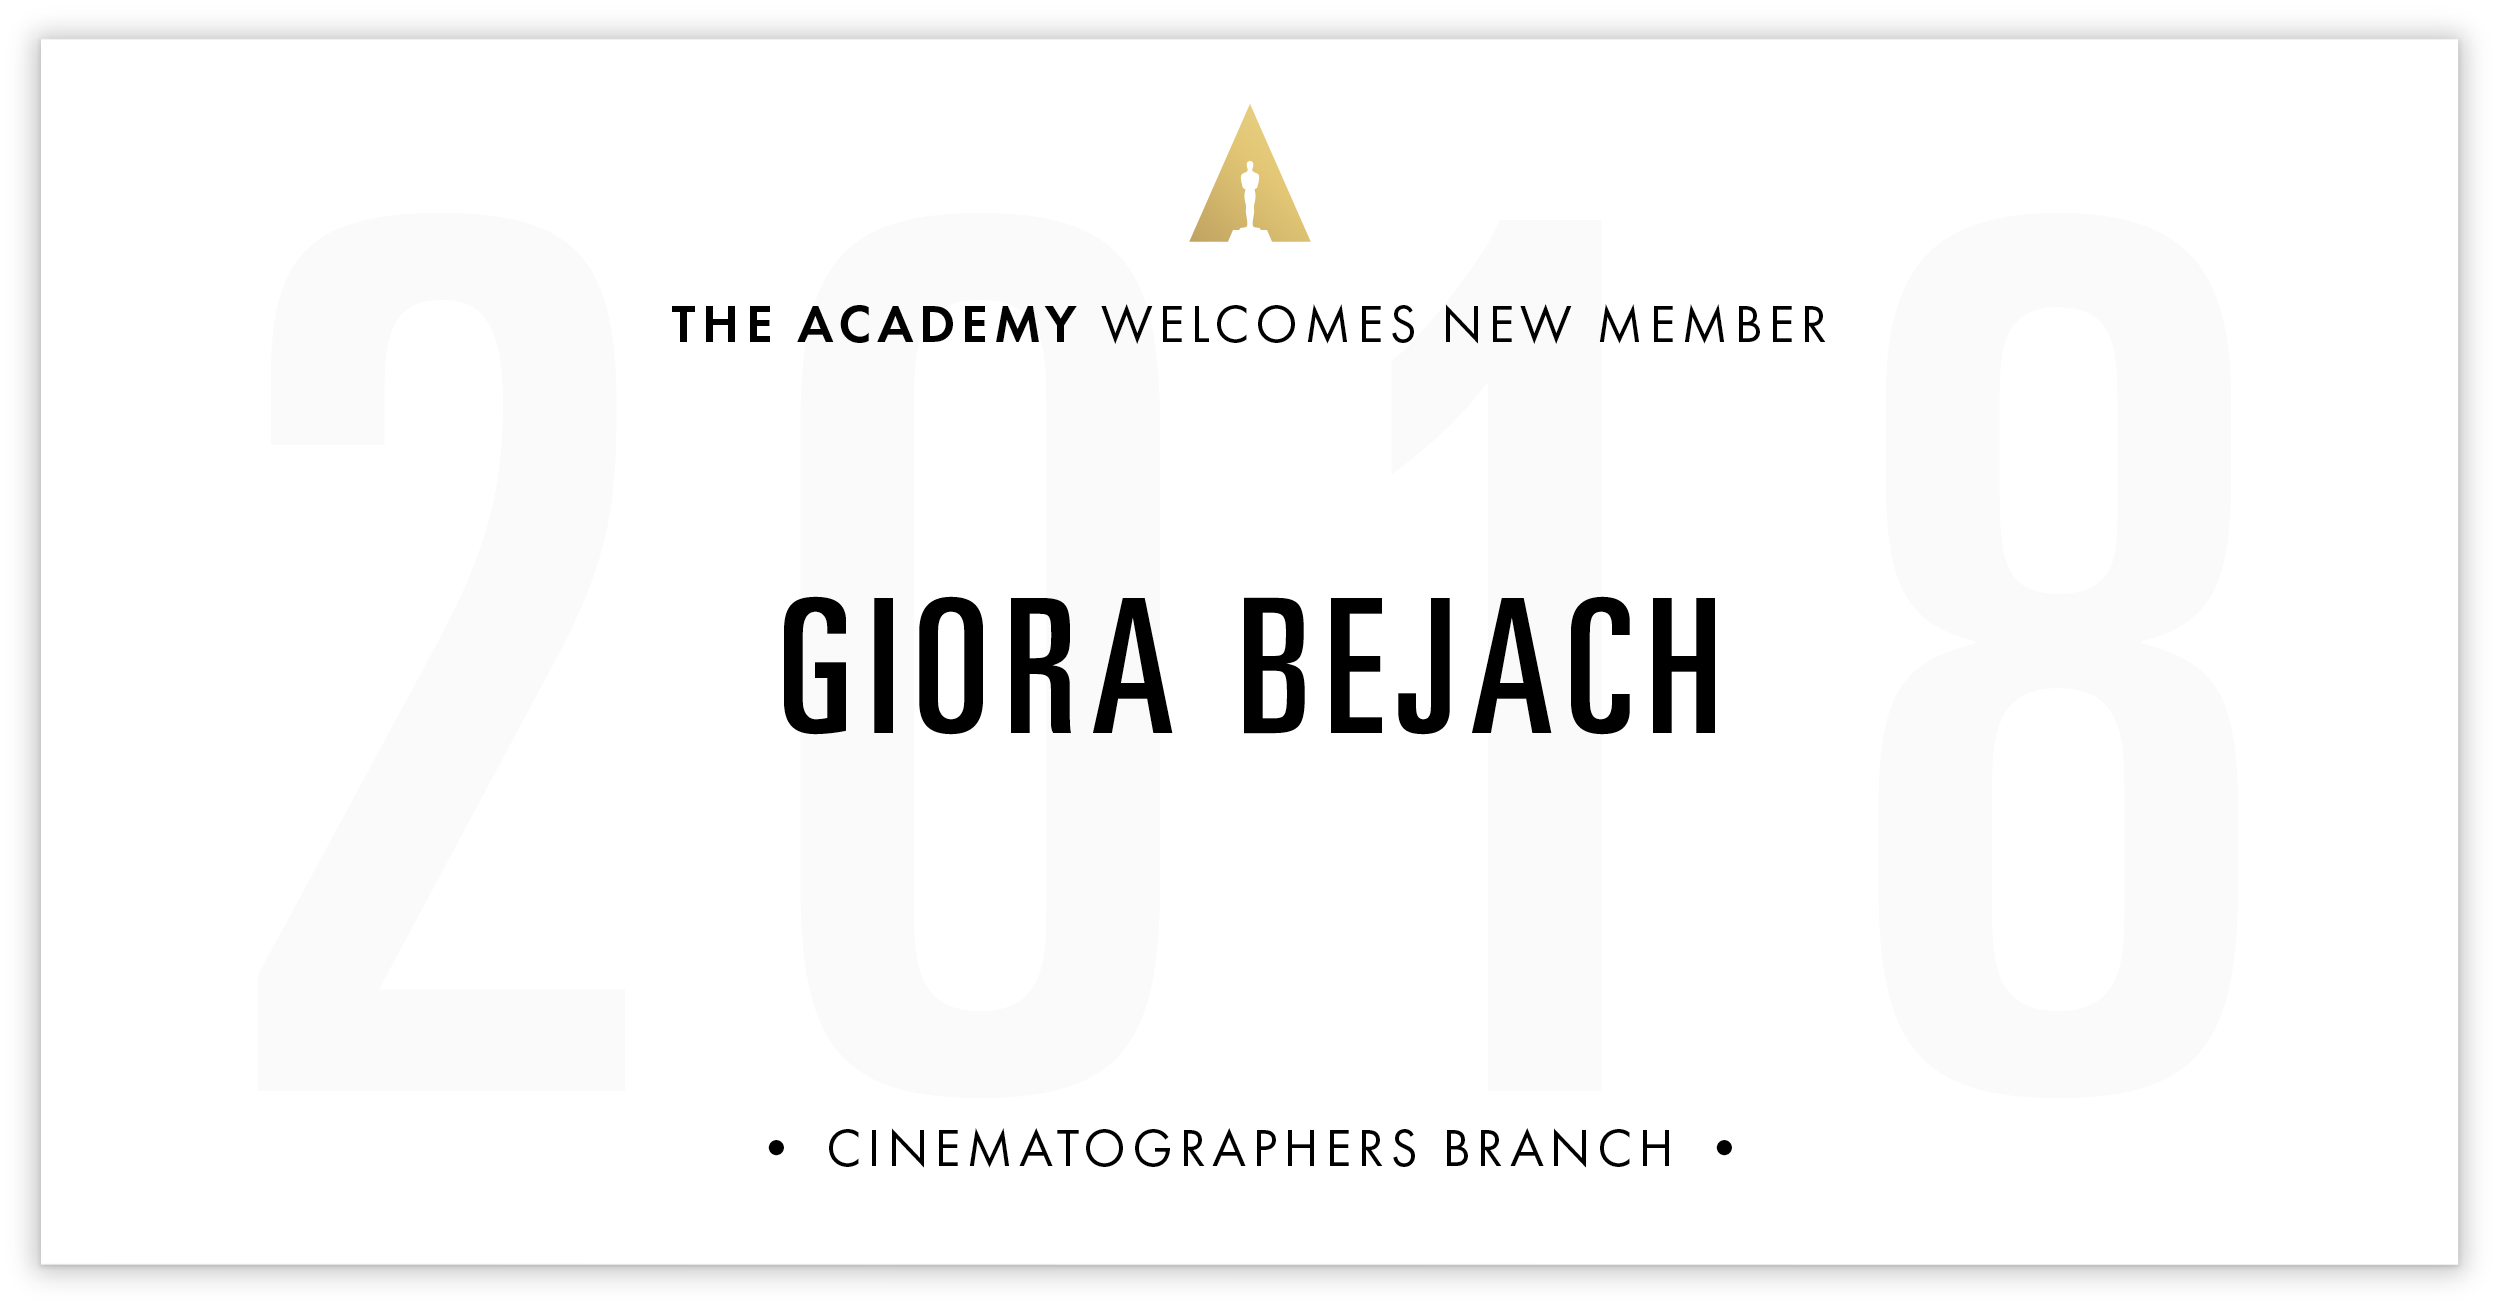 Giora Bejach is invited!